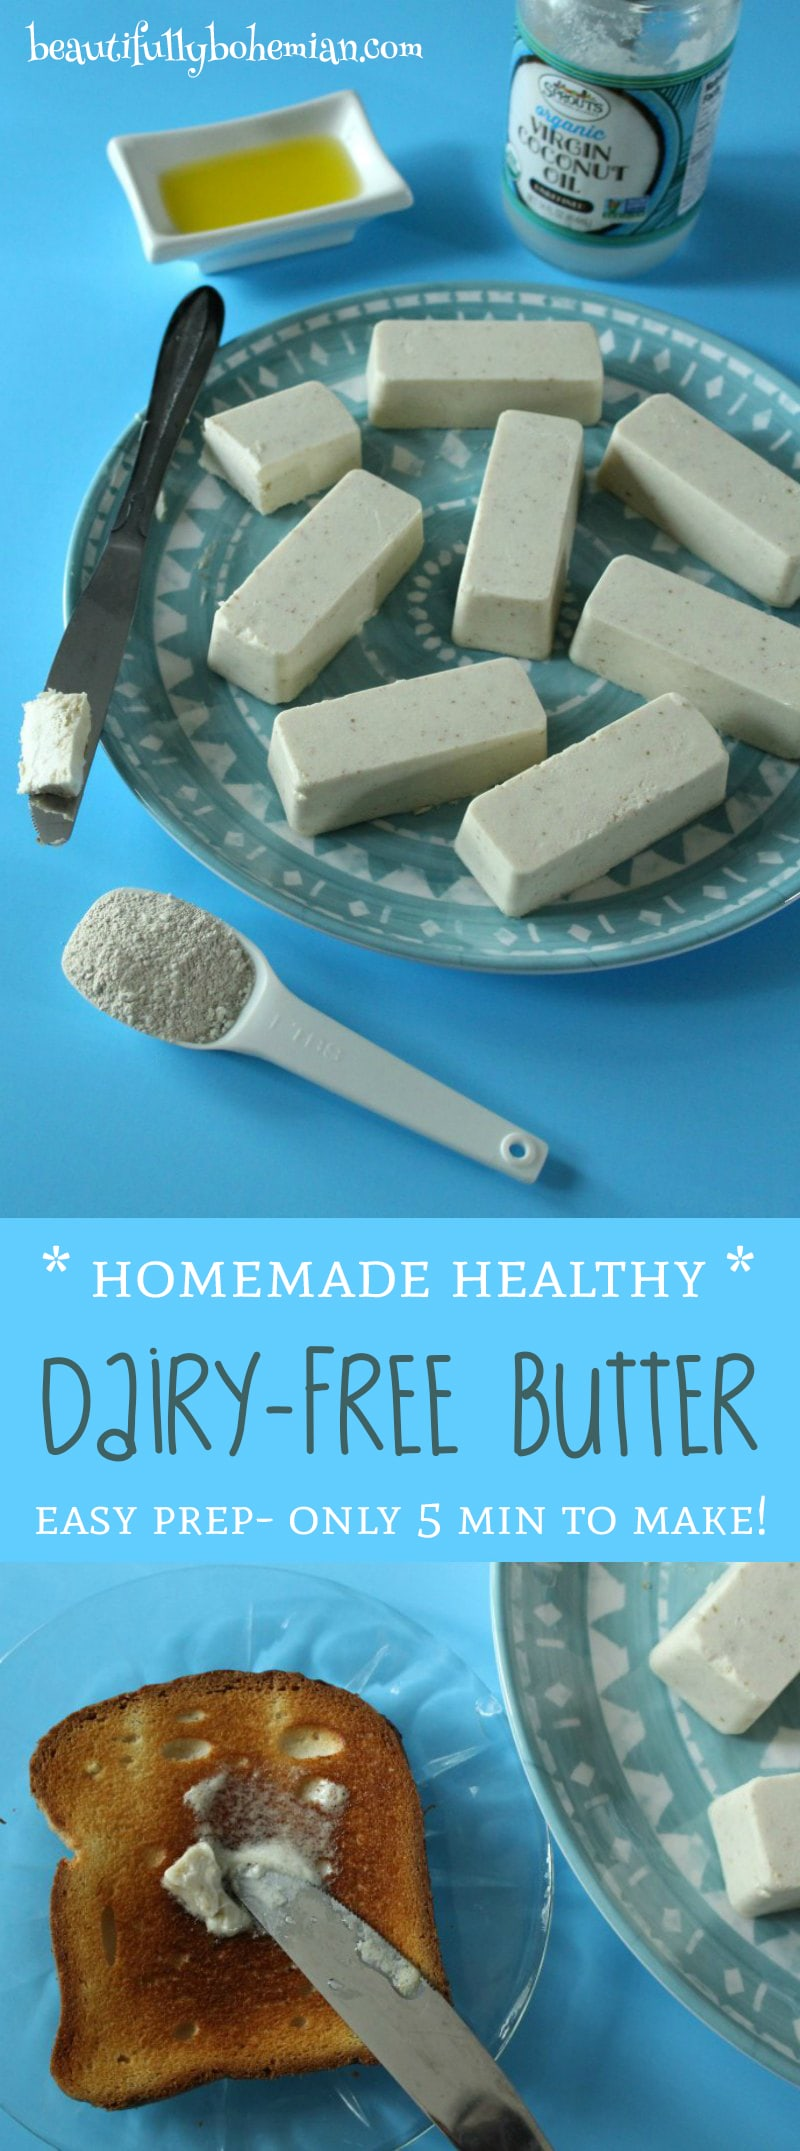 Homemade Healthy Dairy-Free Butter! EASY- takes 5 minutes to make!